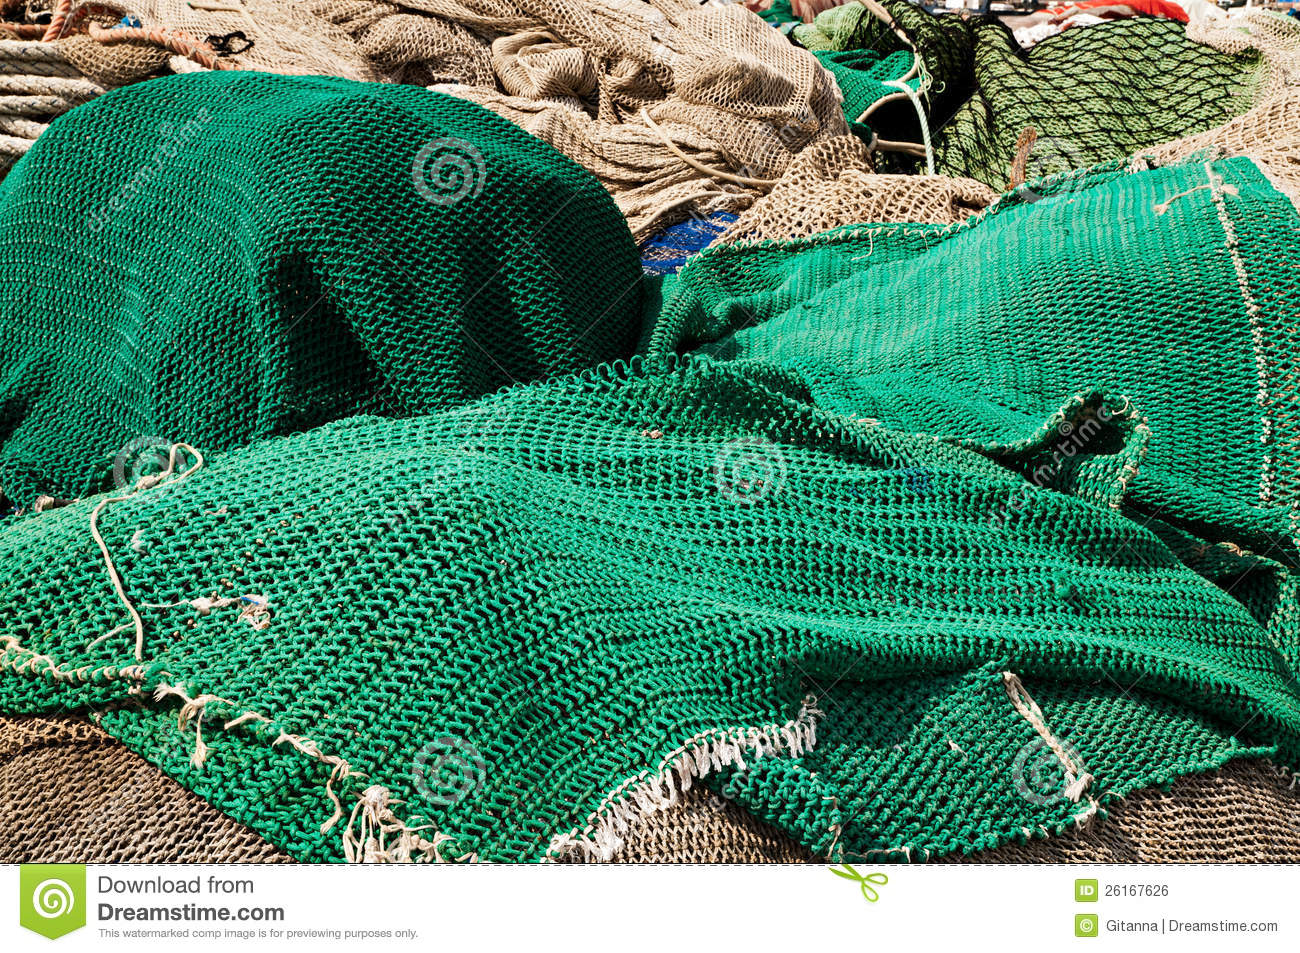 Professional fishing gear royalty free stock image image for Professional fishing gear